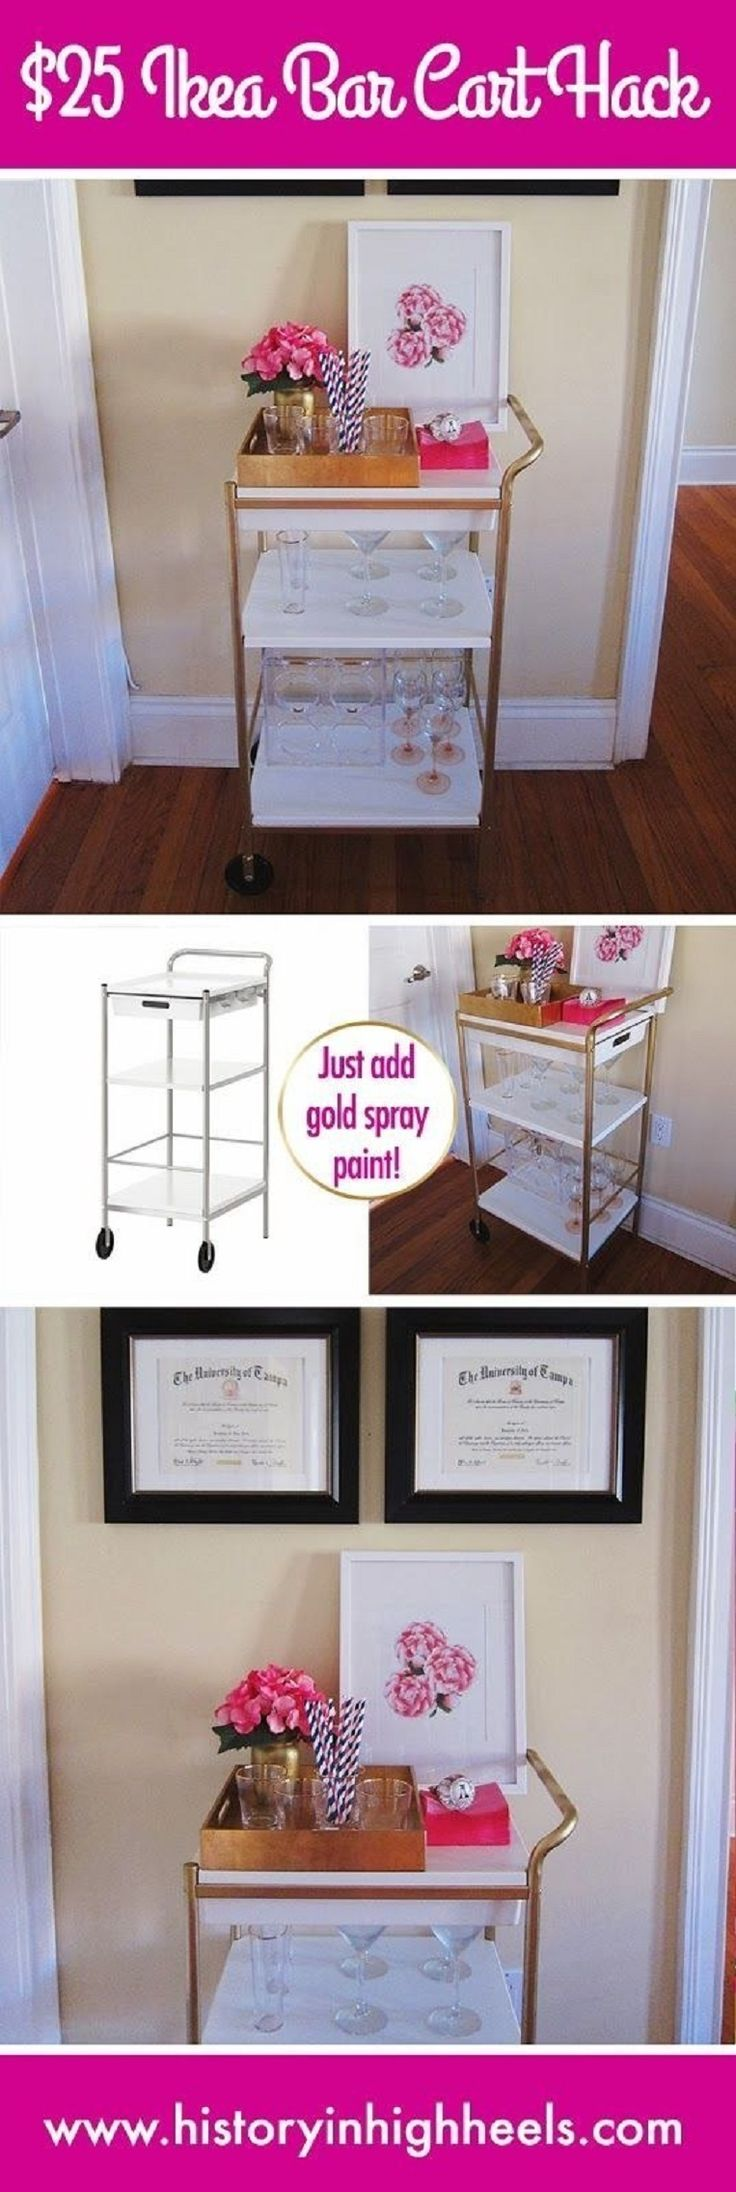 18 Cheap Ways To Make Your Ikea Stuff Look Expensive | GleamItUp